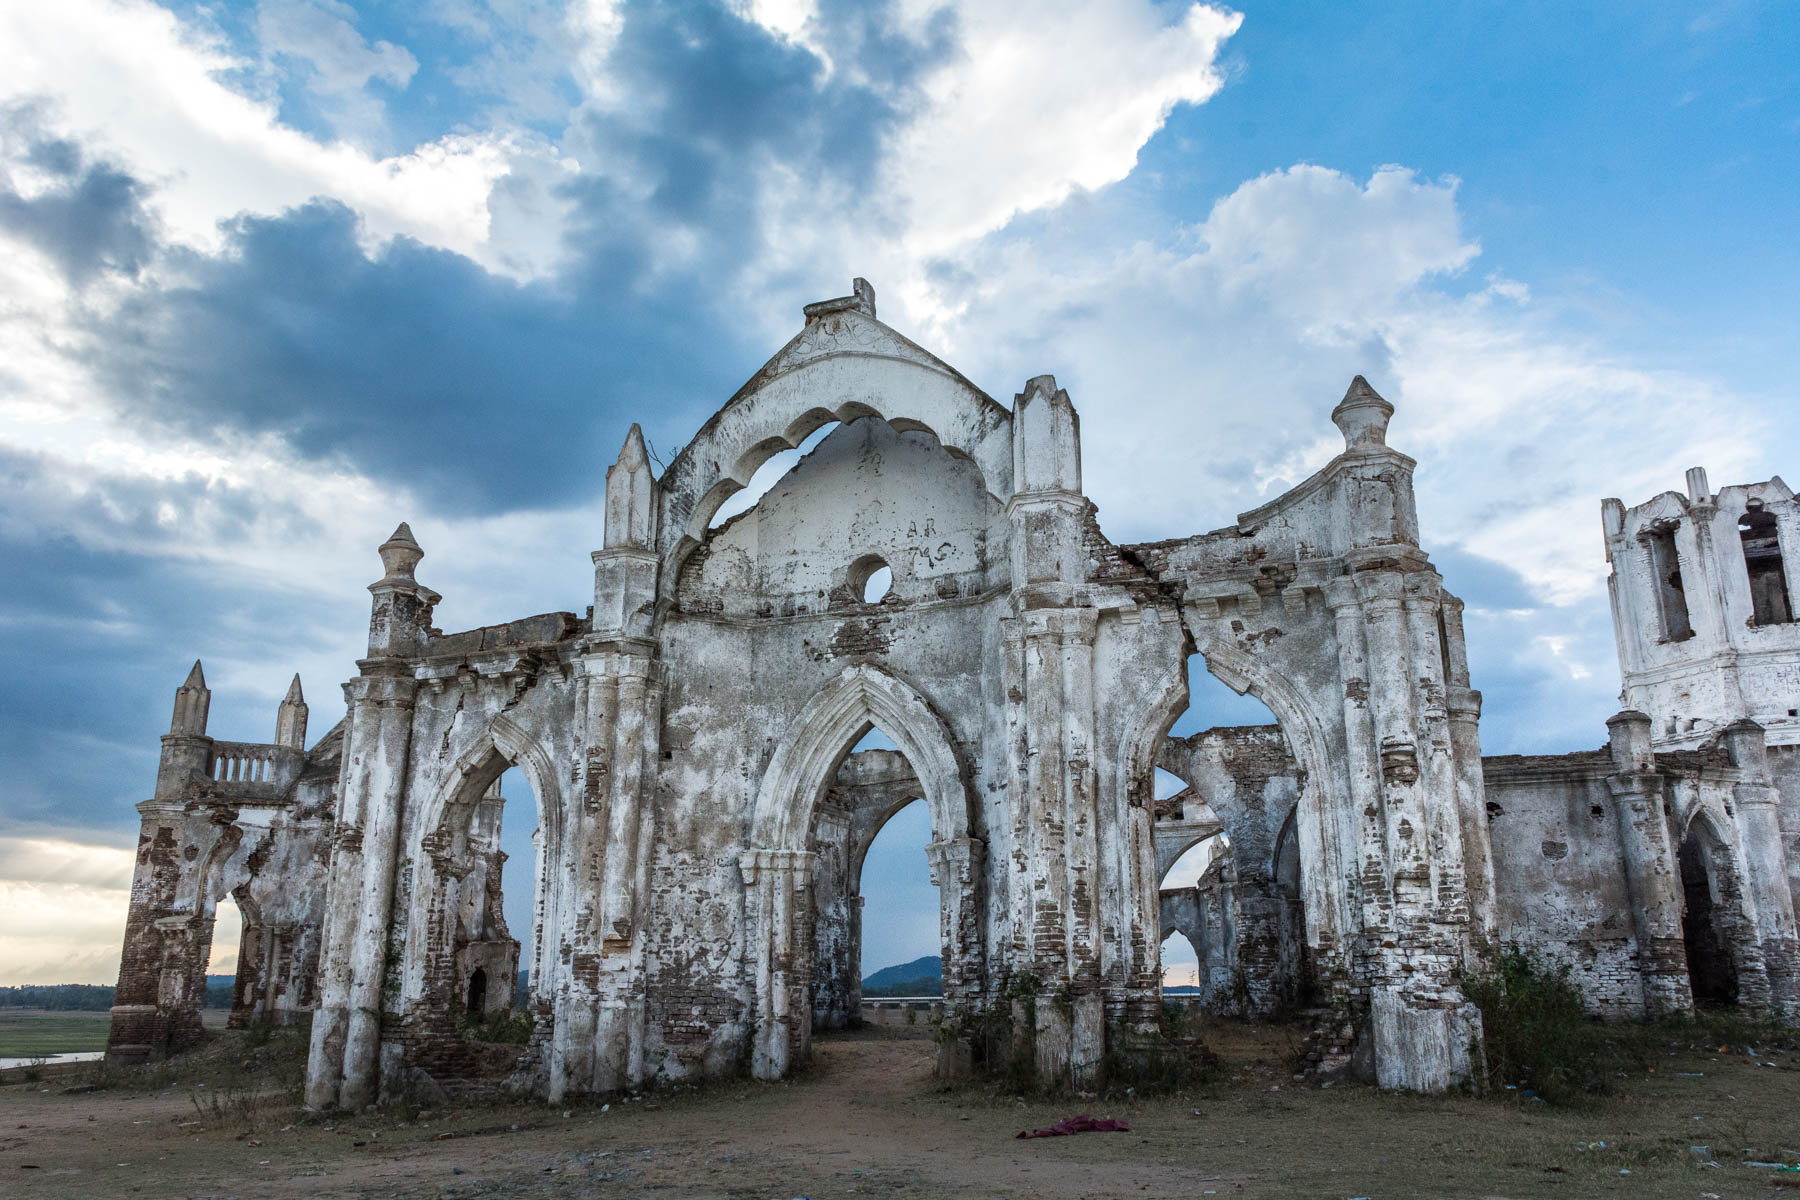 Off the beaten track places to visit in Karnataka, India - Shettihalli Rosary Church - Lost With Purpose